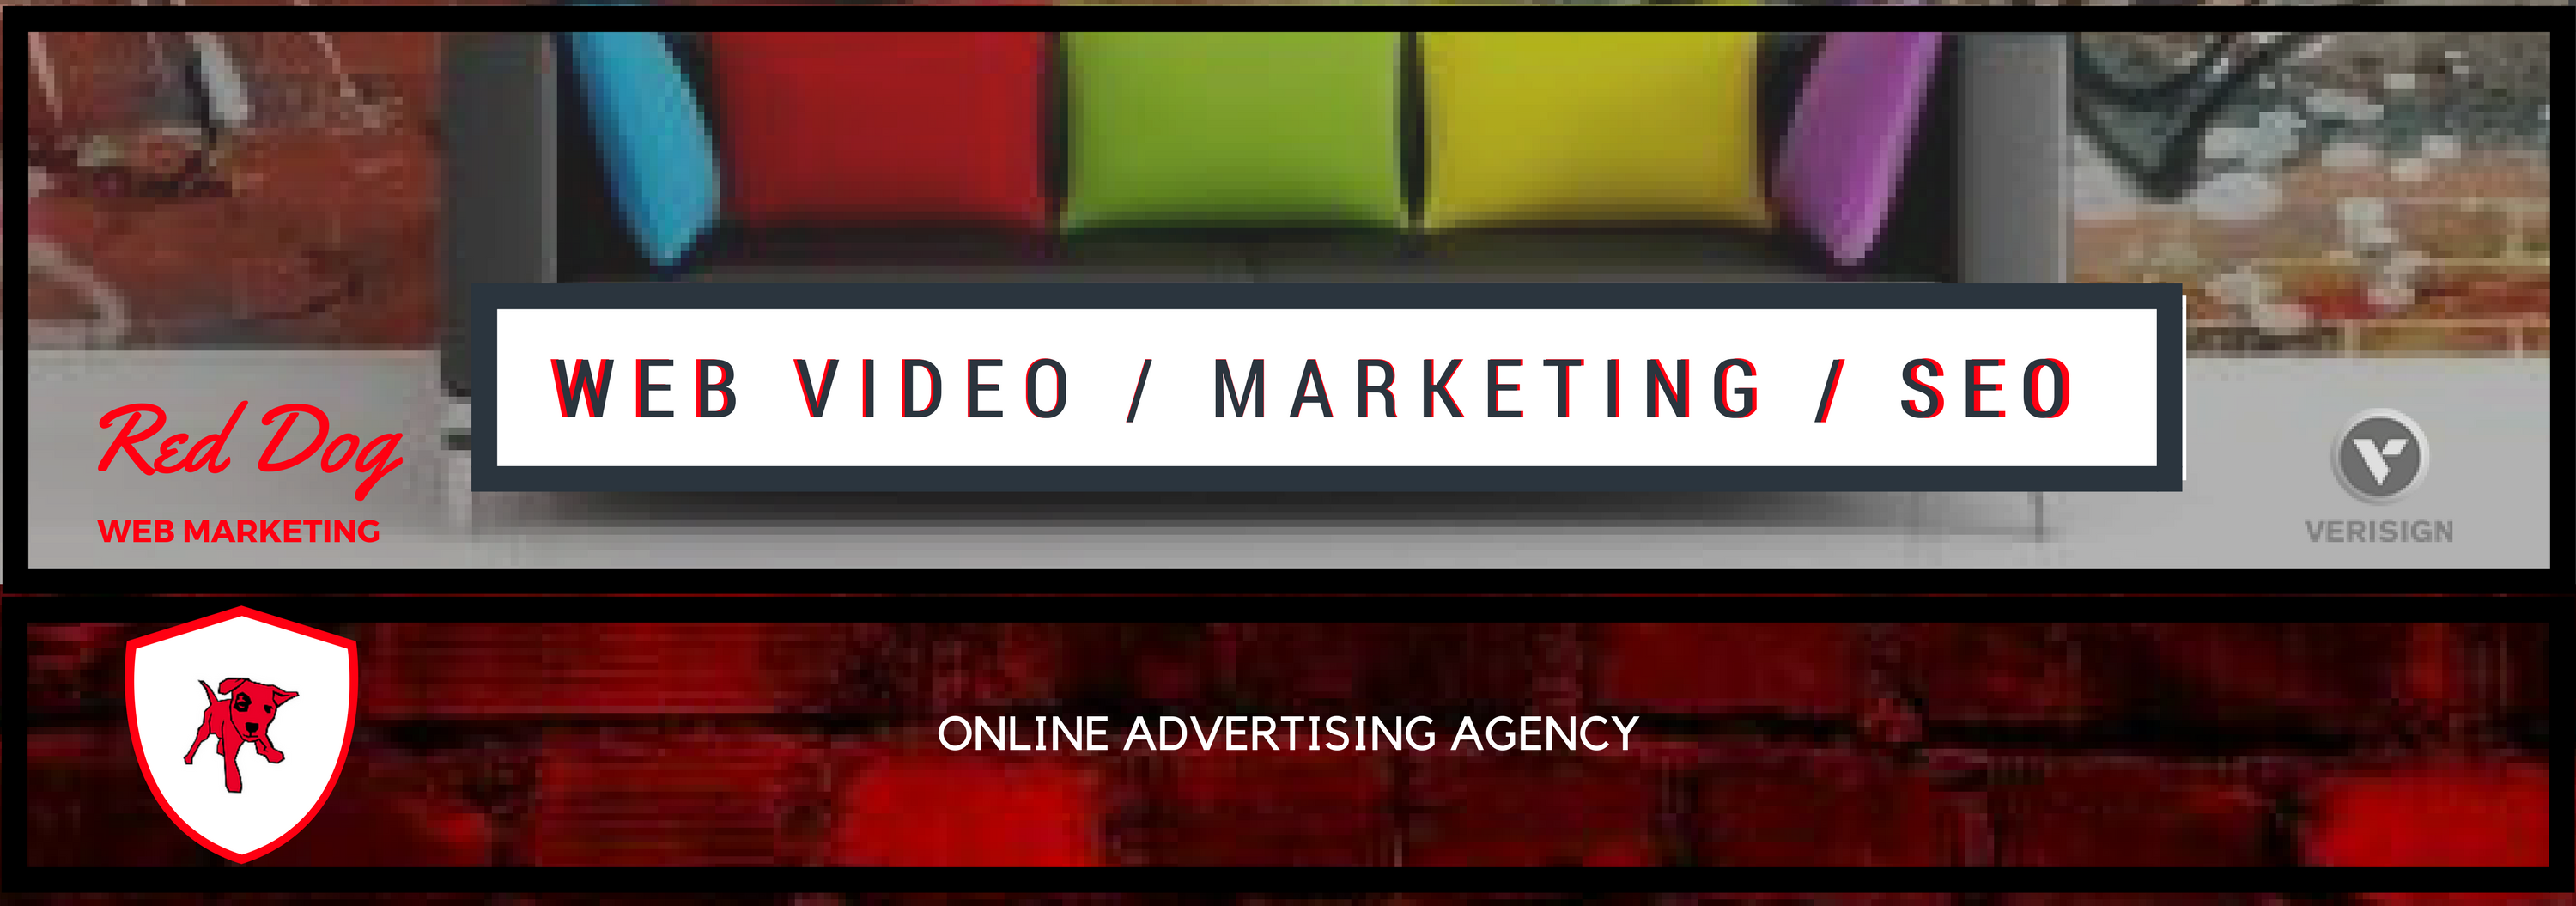 online advertising - Copy